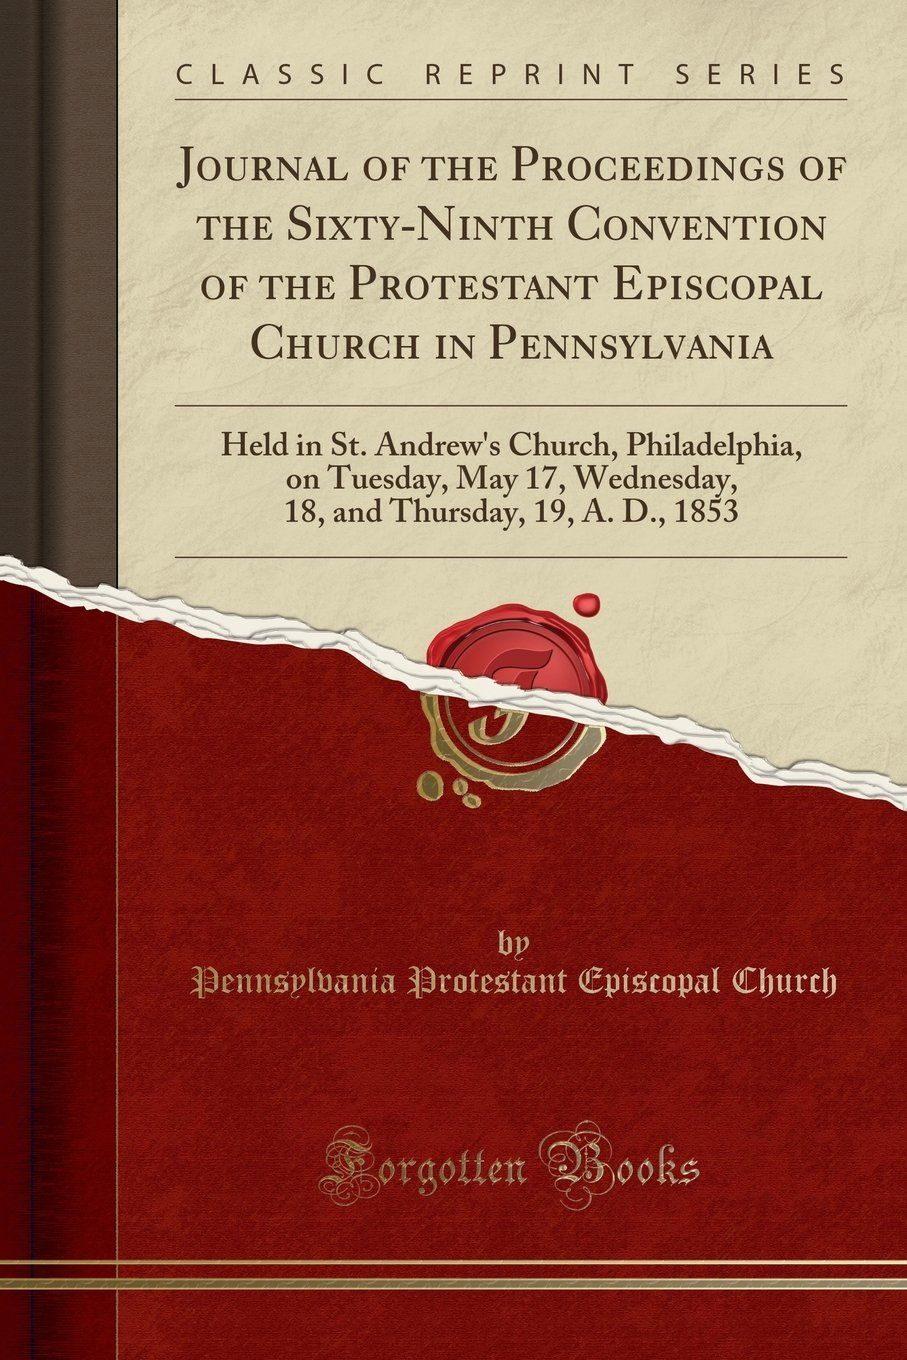 Read Online Journal of the Proceedings of the Sixty-Ninth Convention of the Protestant Episcopal Church in Pennsylvania: Held in St. Andrew's Church, ... Thursday, 19, A. D., 1853 (Classic Reprint) pdf epub